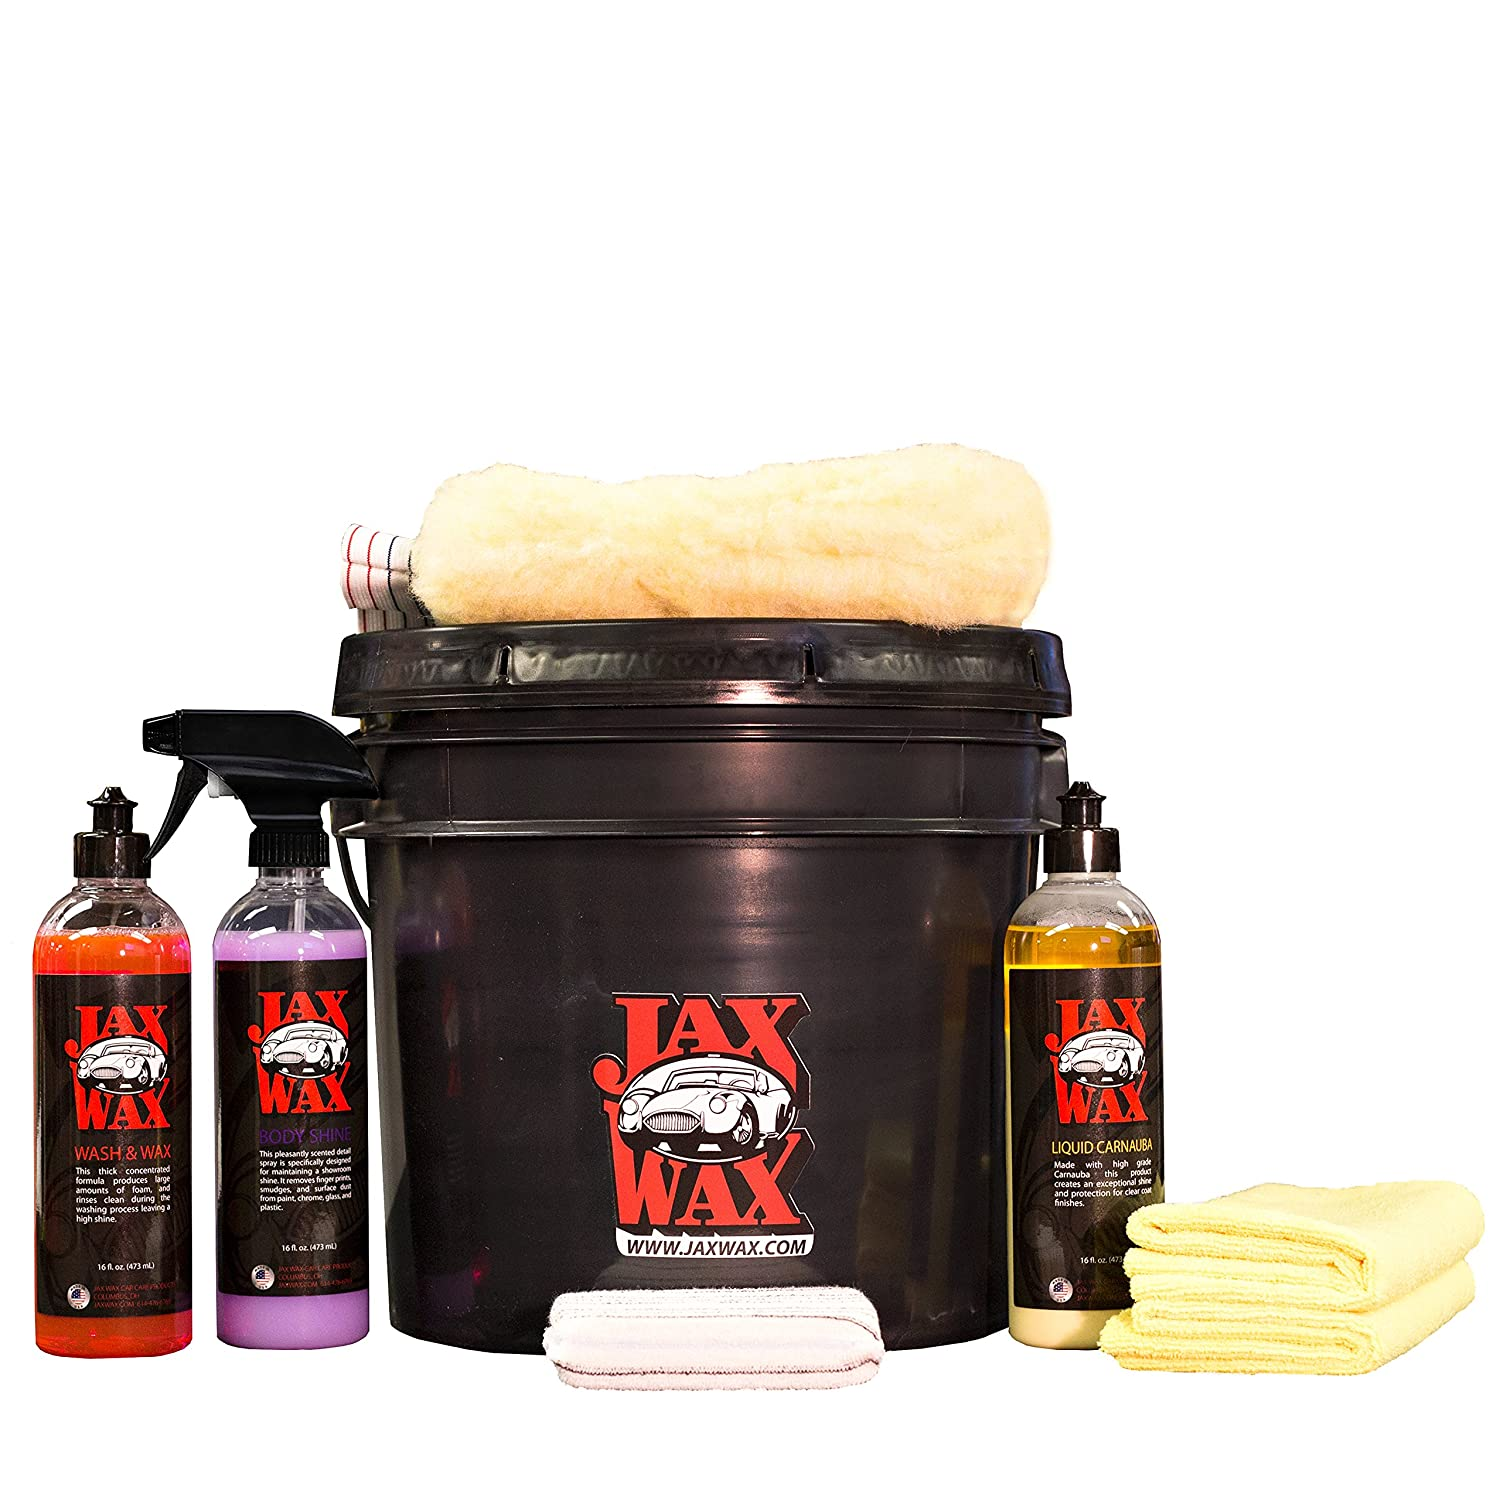 Jax Wax Professional Easy Wash and Wax Car Care Bucket Organizer Kit 4332943700